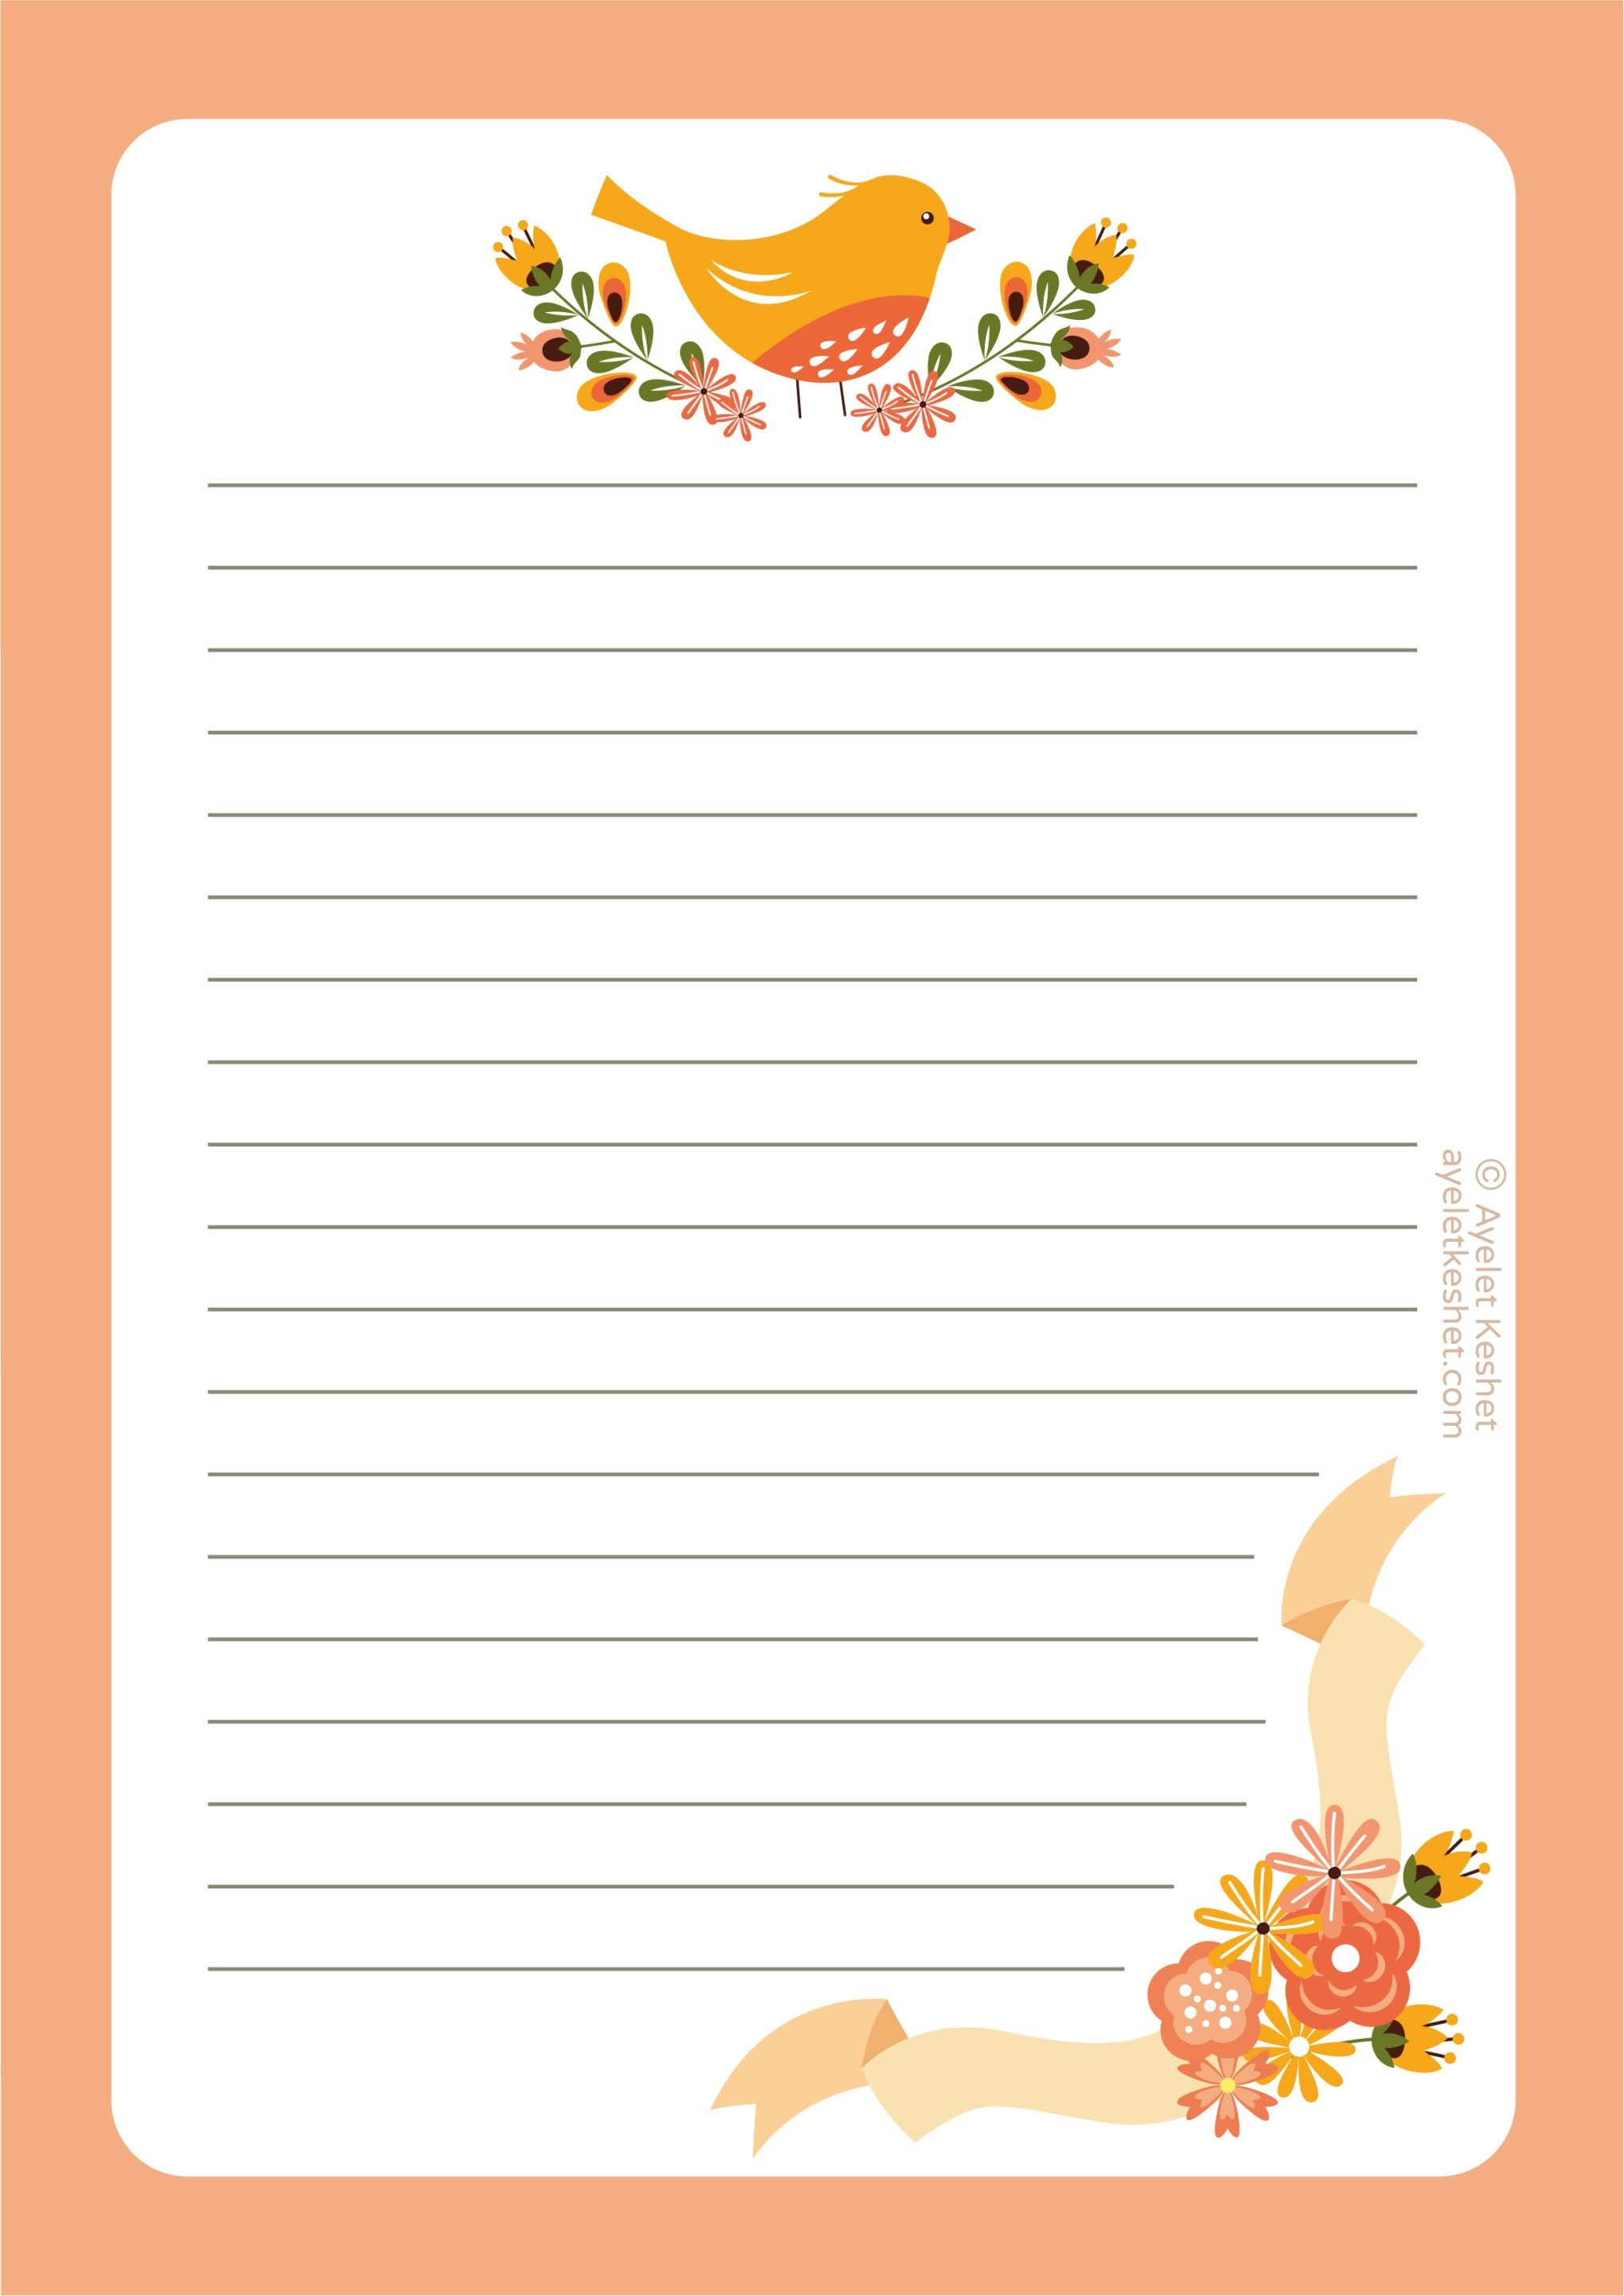 photograph about Free Printable Paper Designs called Creating Paper Ideas Printable - Floss Papers